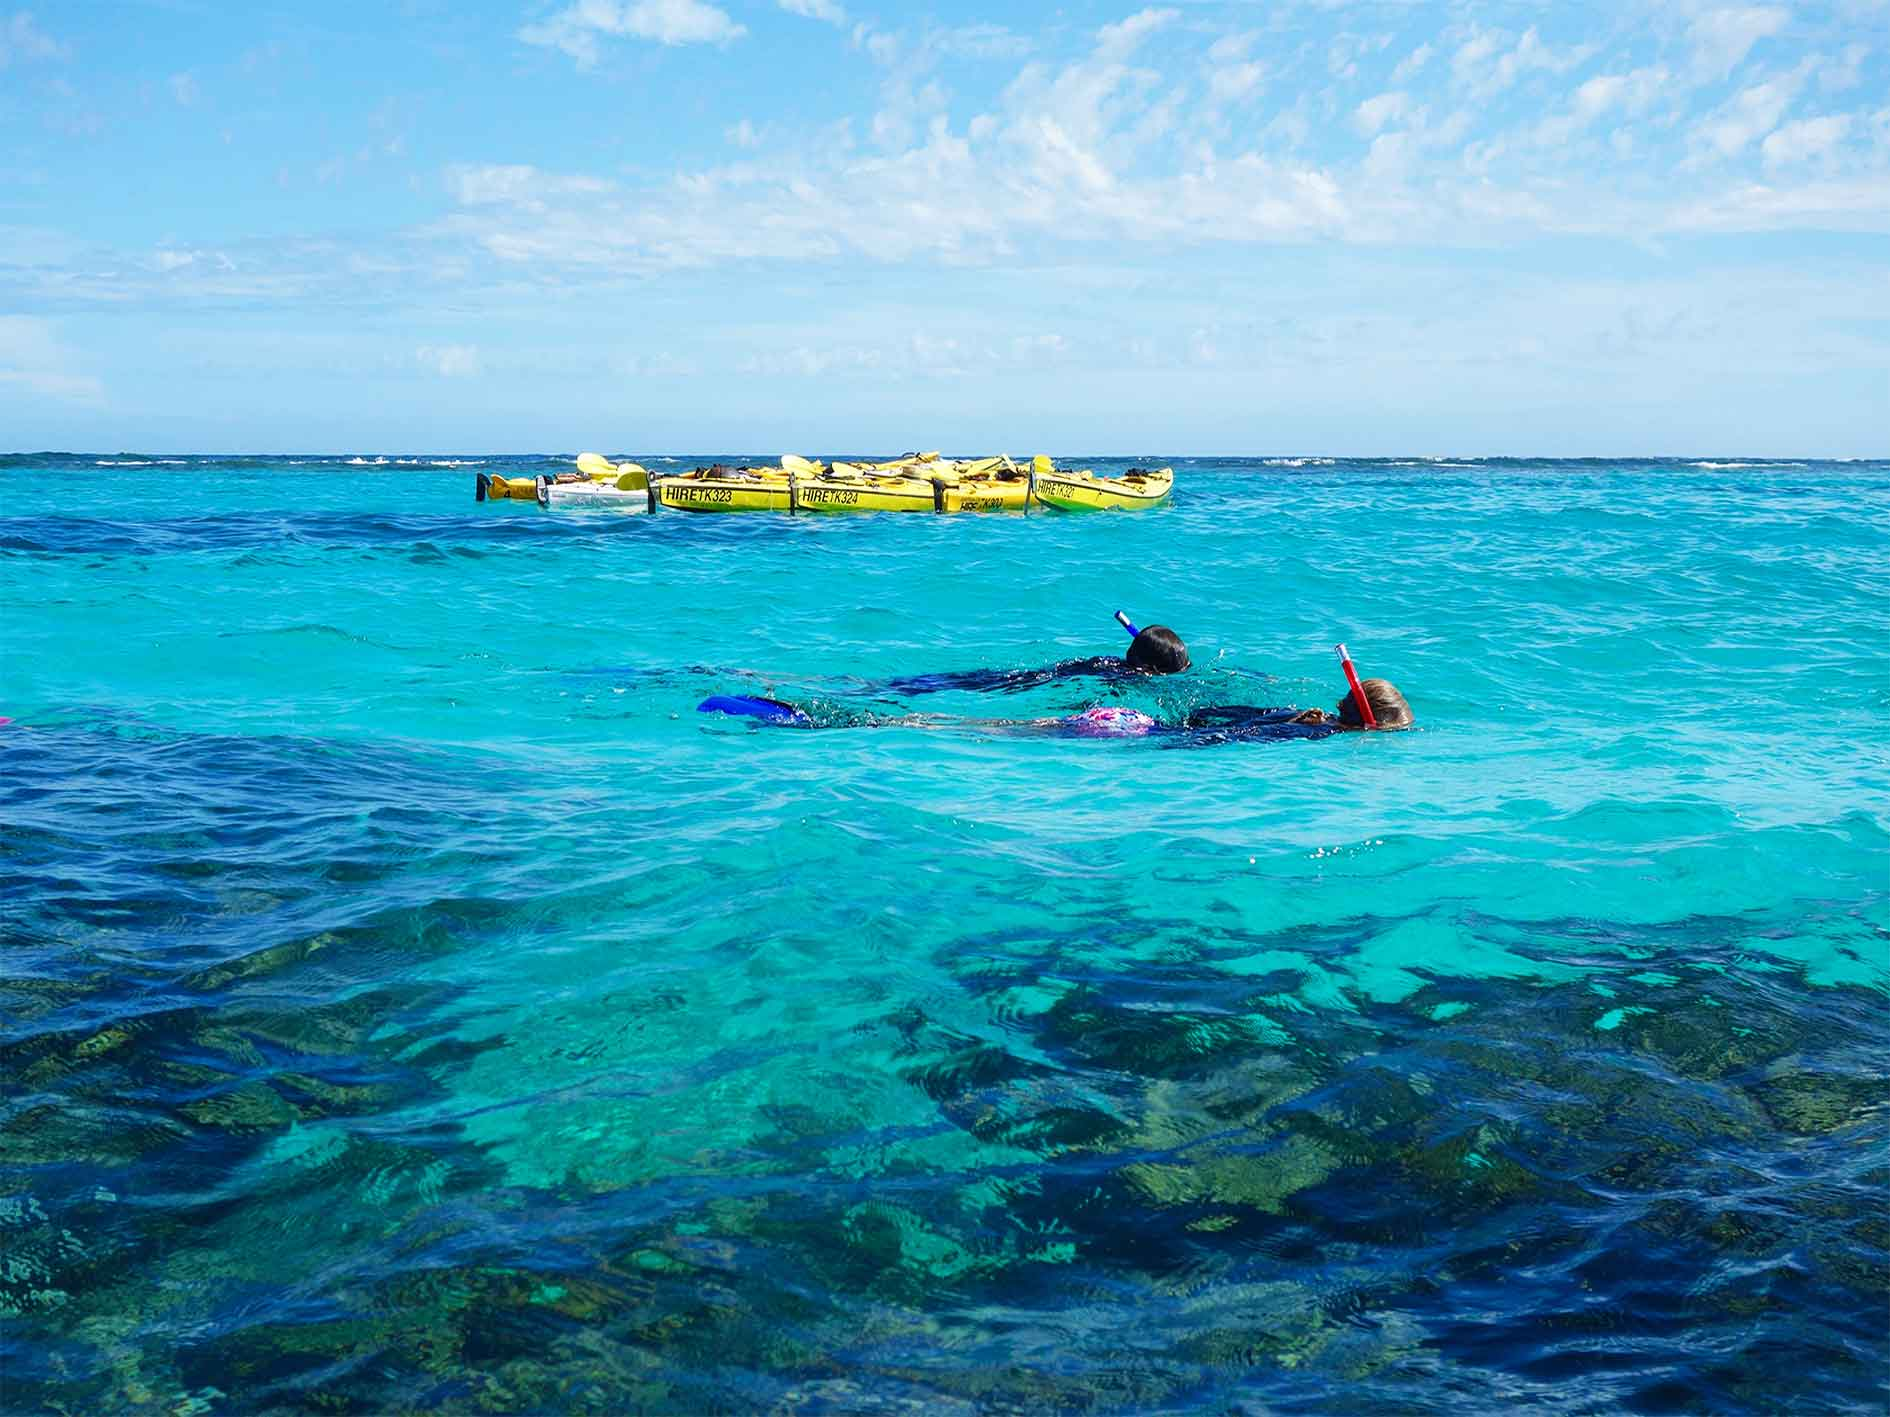 reef and beach tour, sea kayaking and snorkelling tour, overnight tours on Ningaloo Reef. Snorkel from your kayak on the coral reef